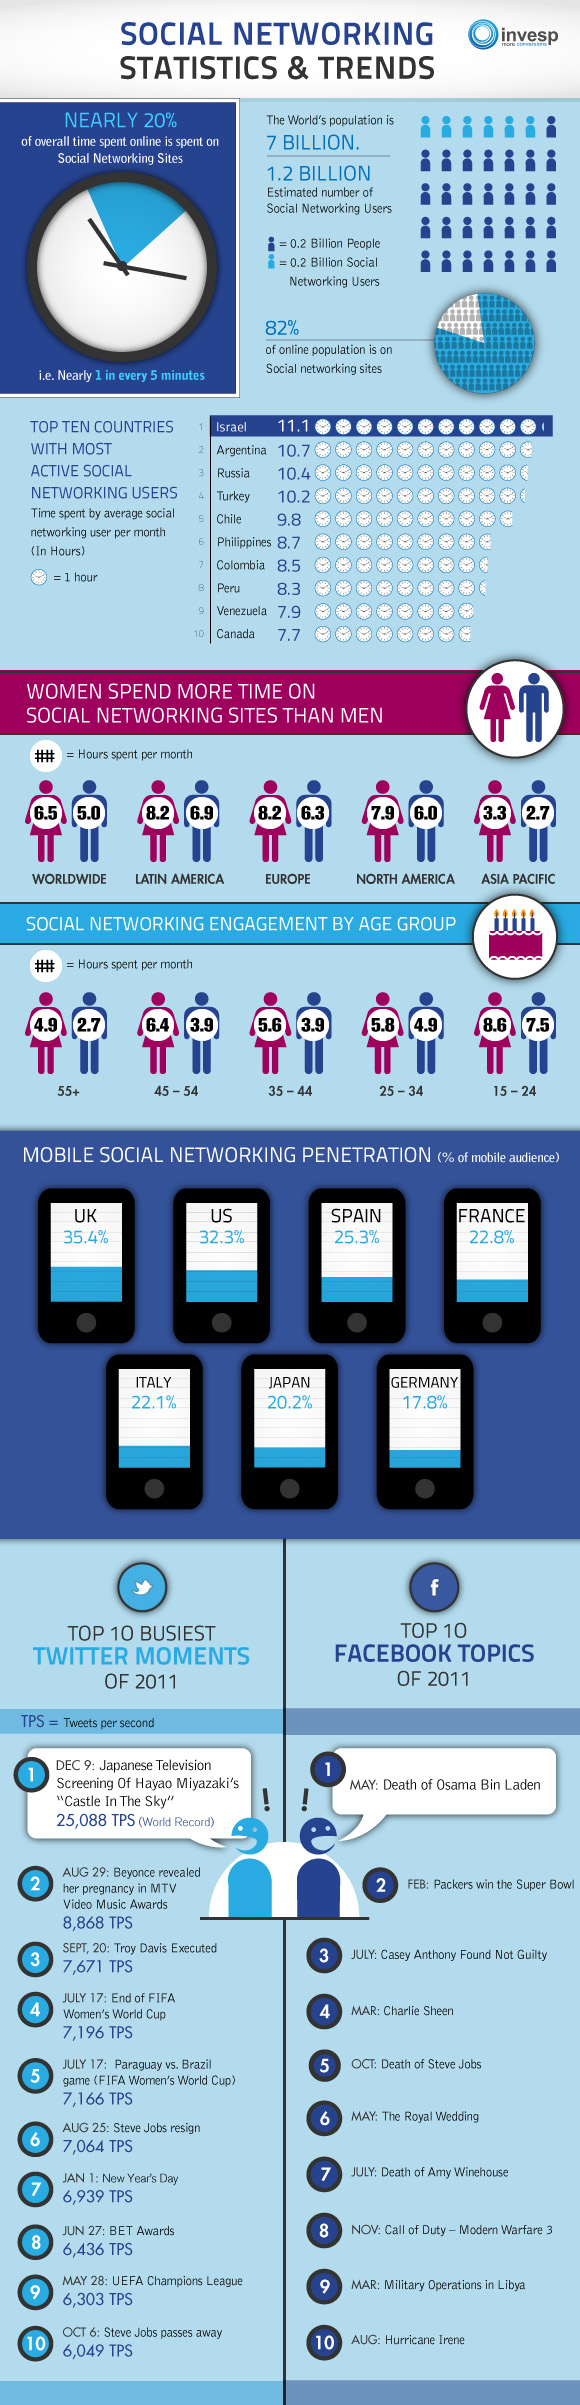 Social Networking - Statistics and Trends